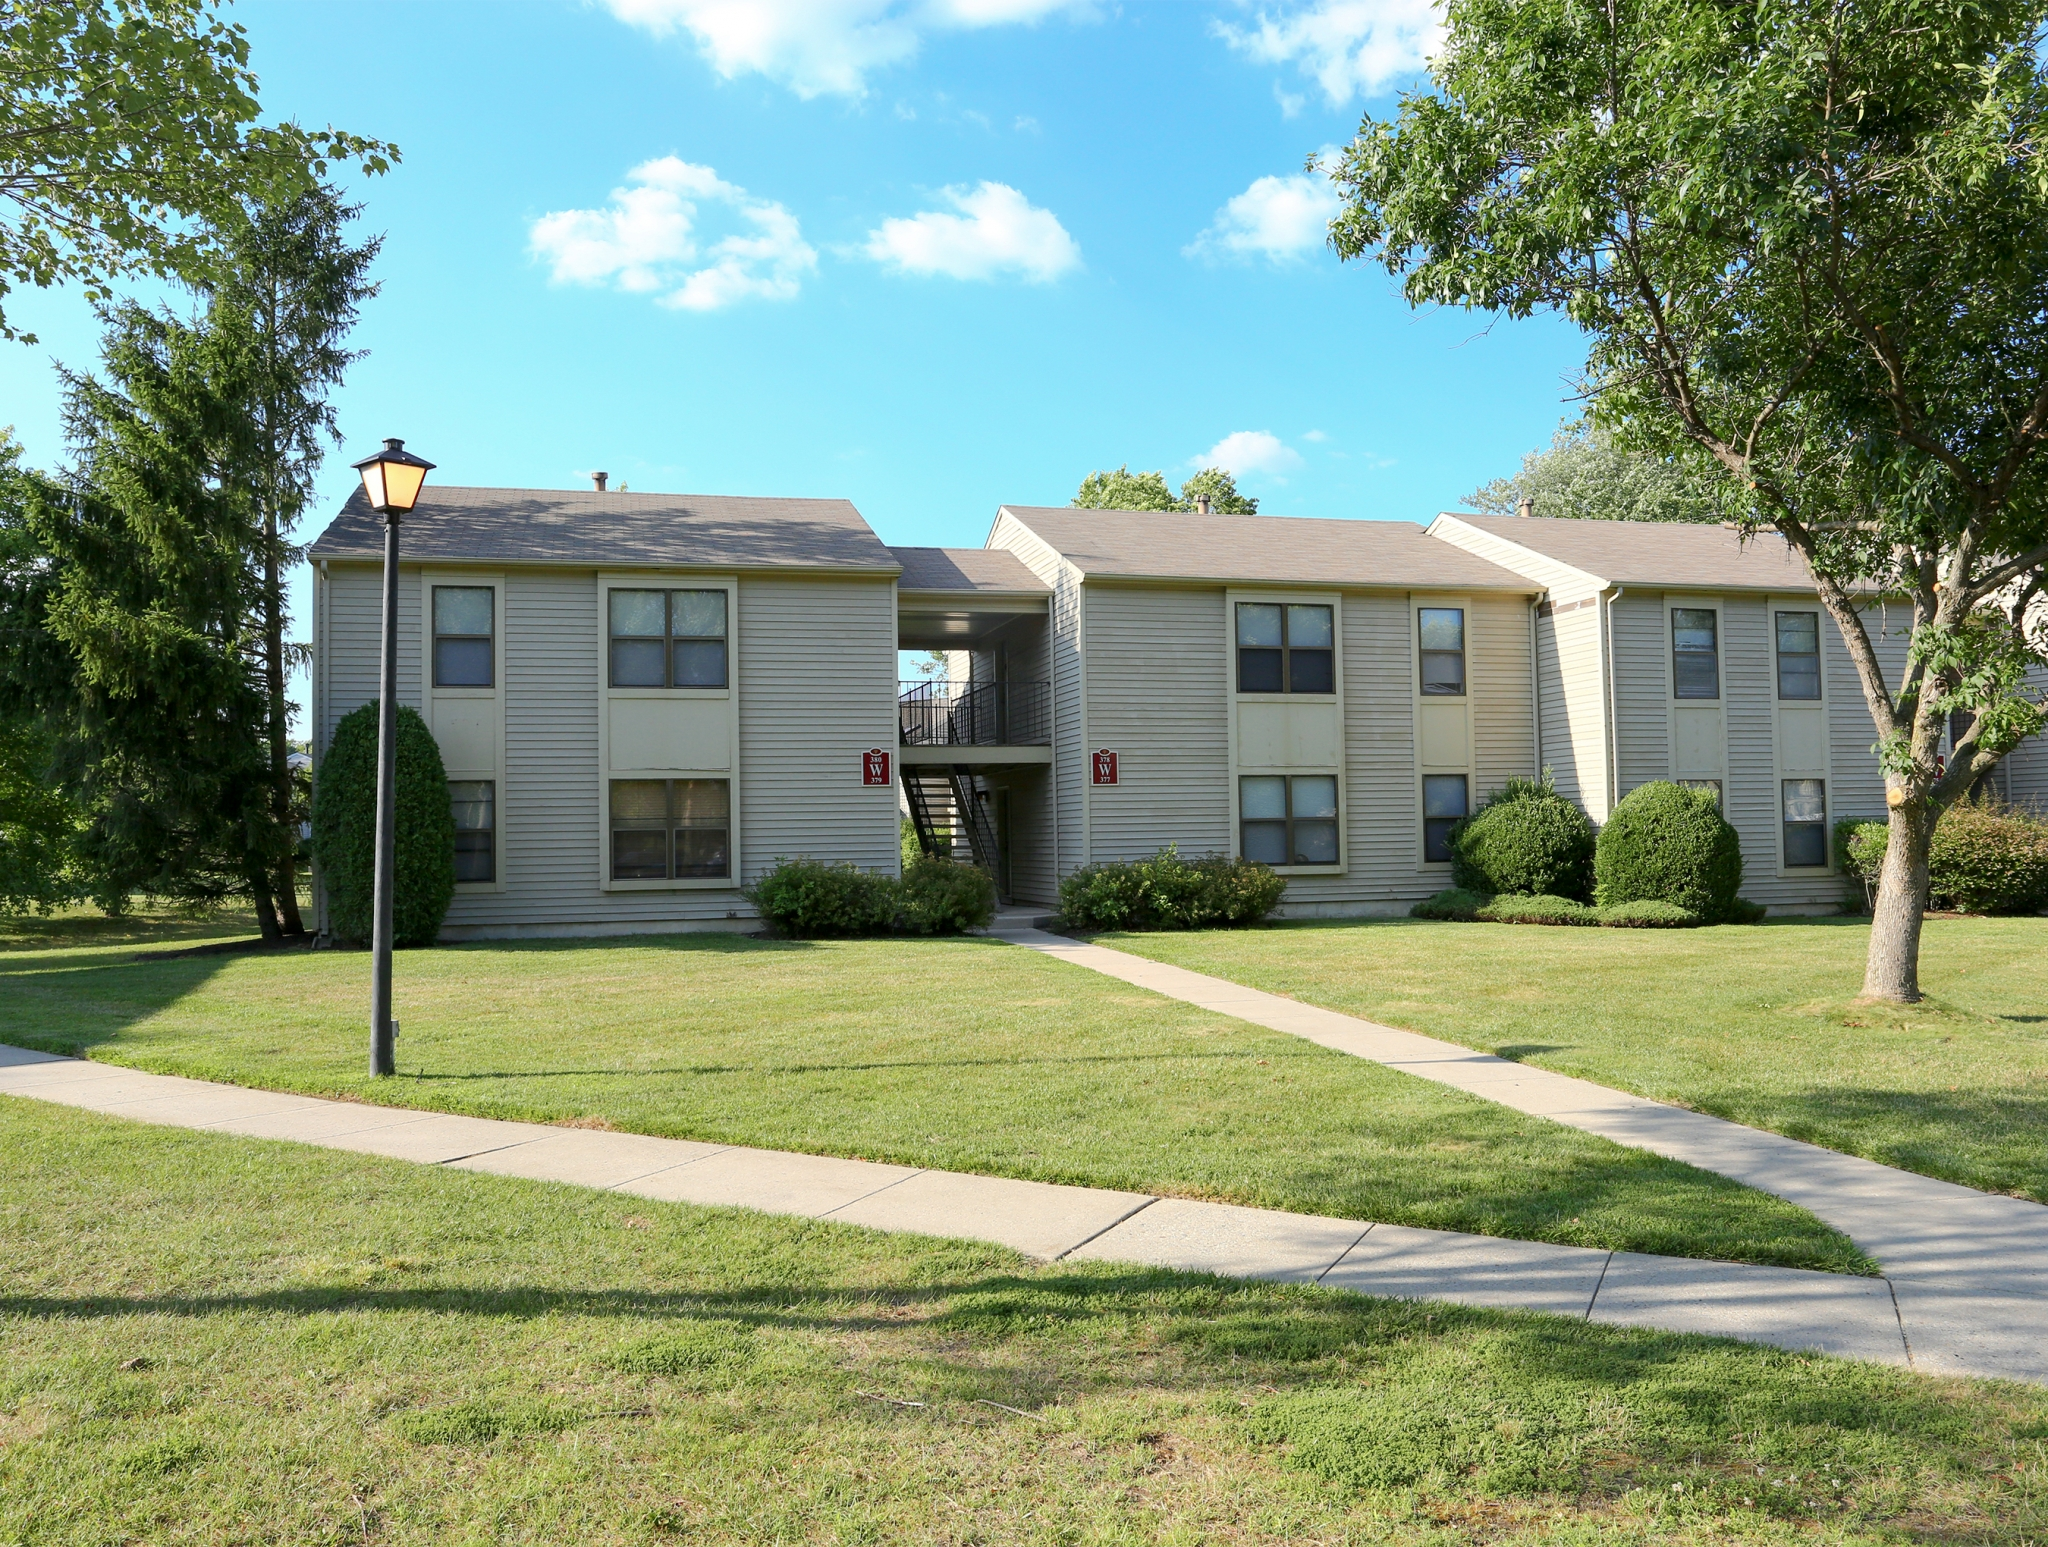 Willow Ridge Village Apartments image 10